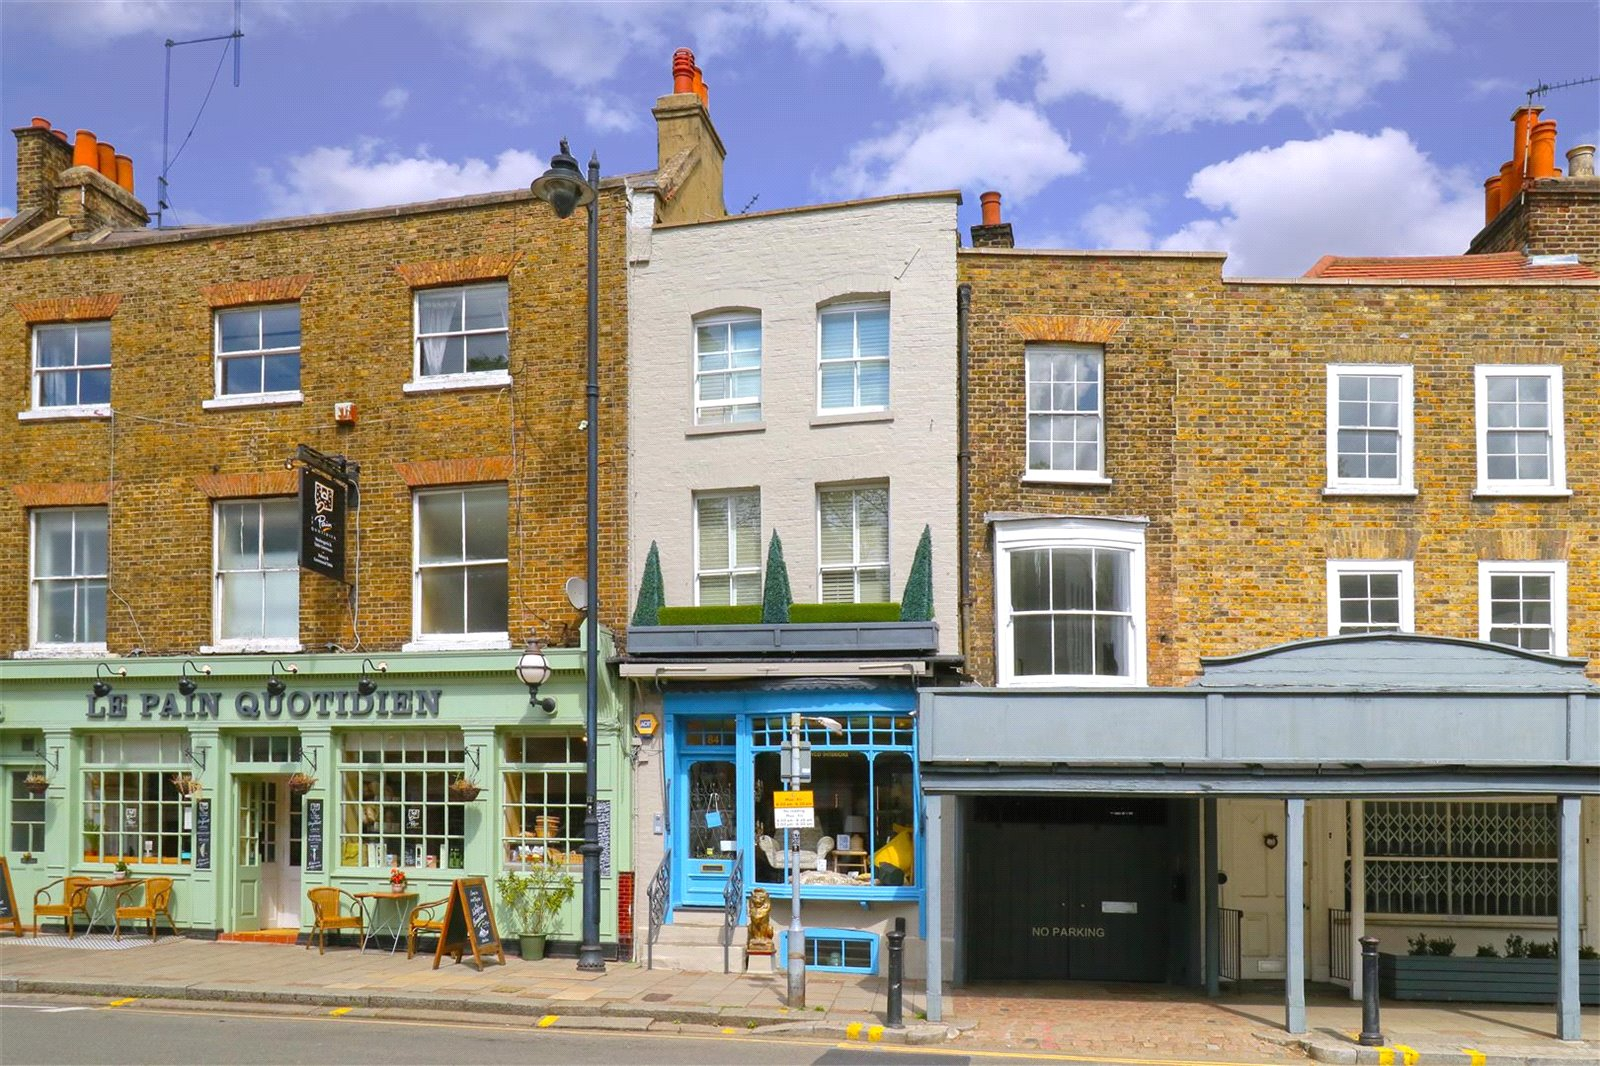 House for sale in Highgate Village, N6 5HX, N6 5